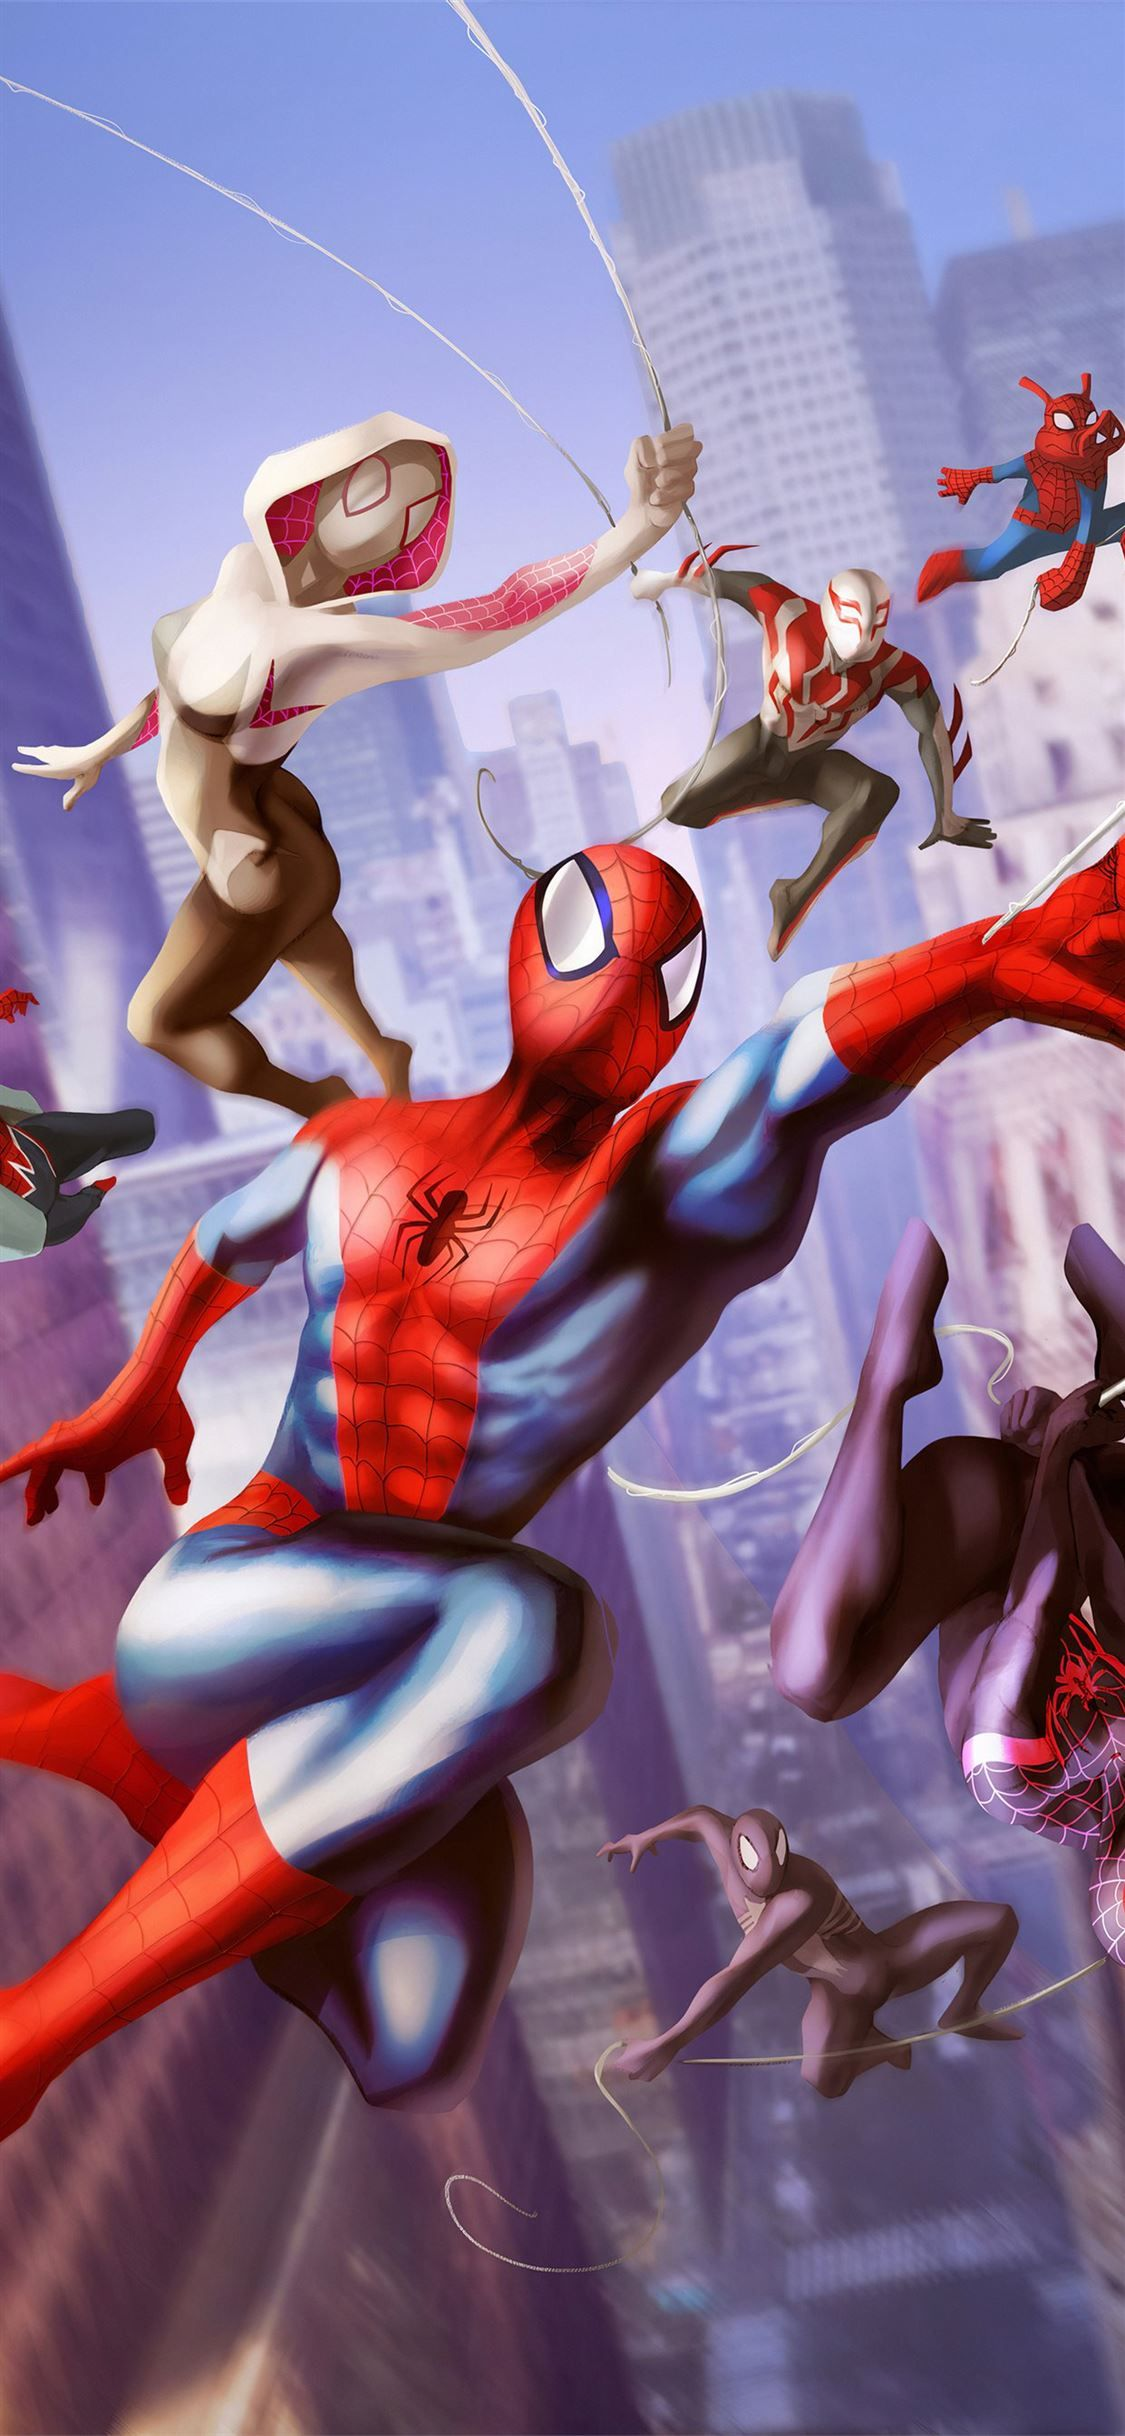 Spiderman Into The Spiderverse 2 2022 Movie Superheroes Movies 4k Spiderman Animatedmovies Artw Spiderman Best Iphone Wallpapers Samsung Galaxy Wallpaper